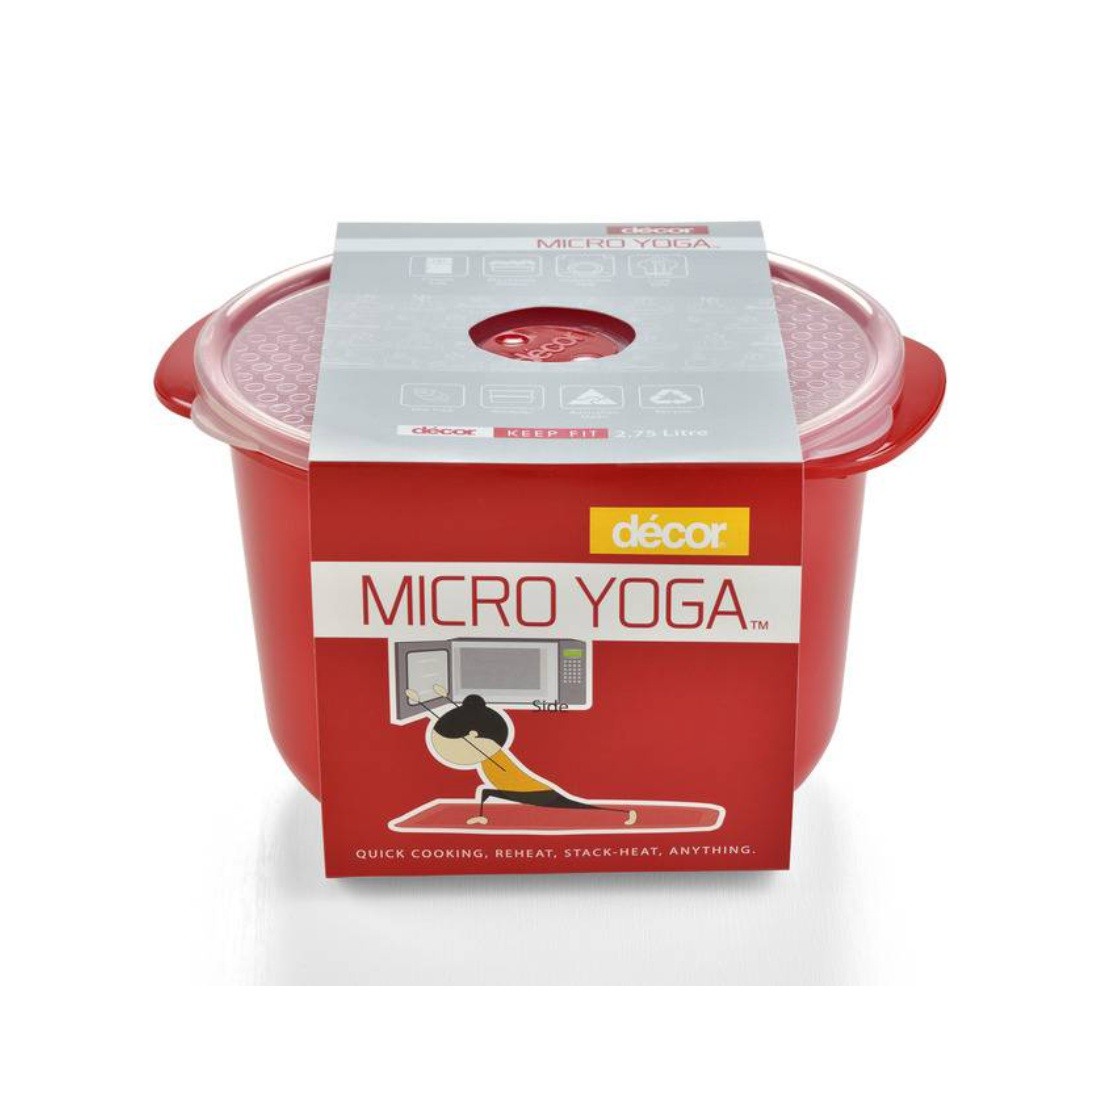 Micro Yoga Rice Cooker 2.75L Plastic Containers by Decor